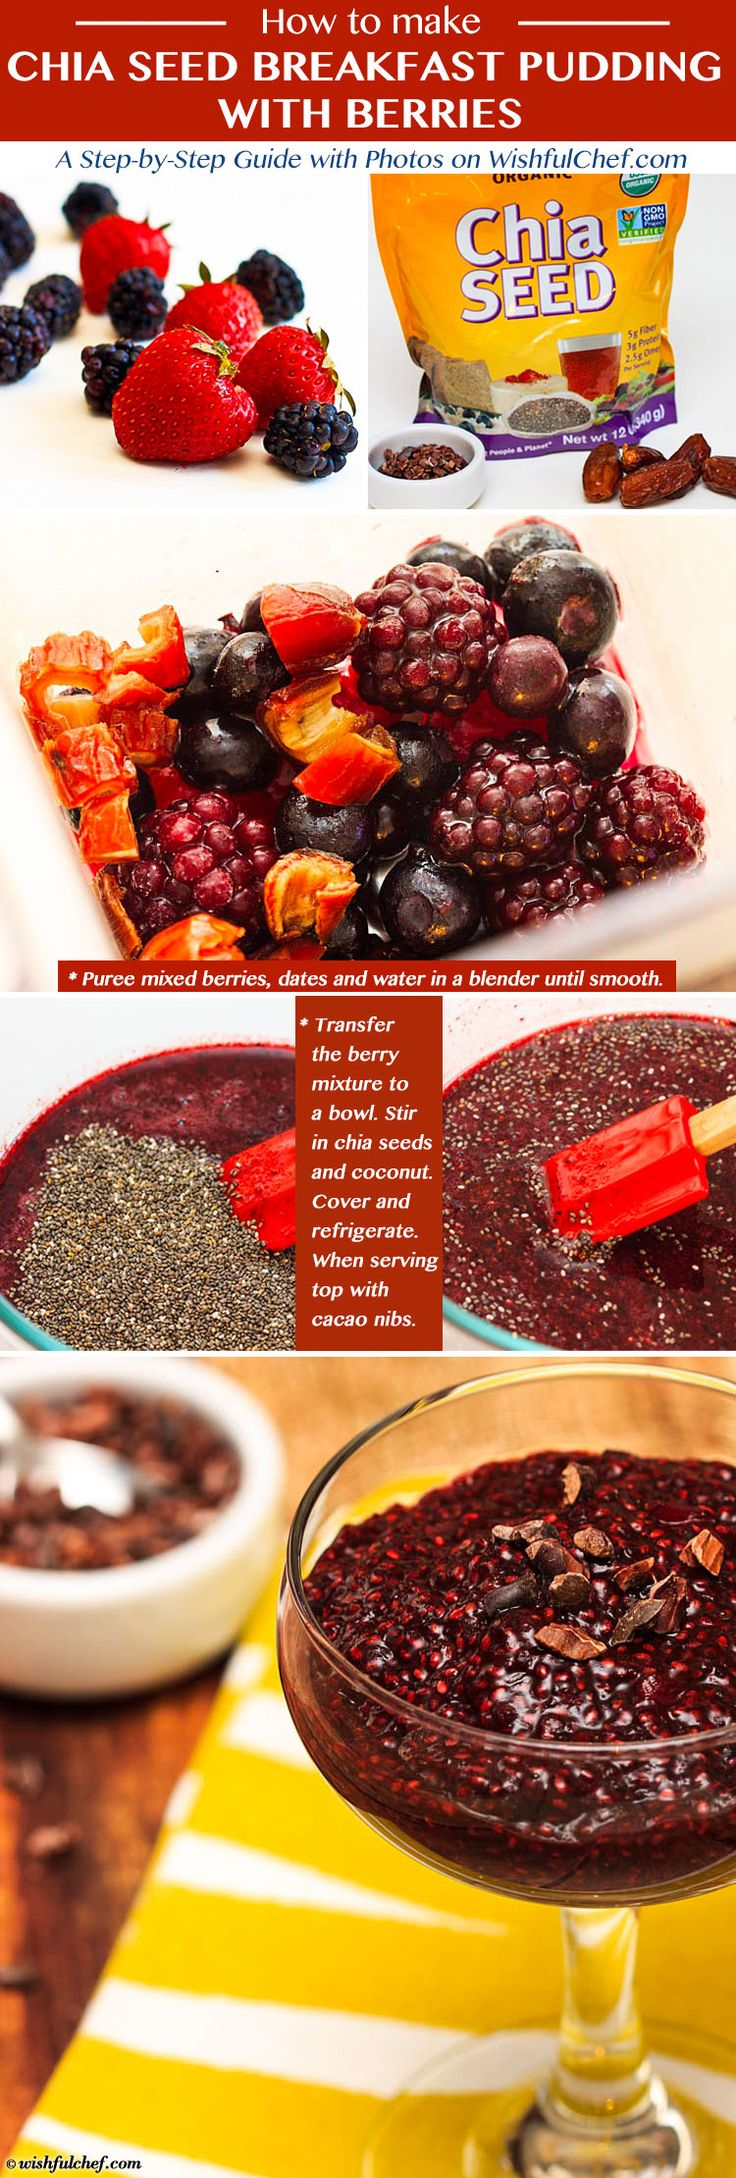 Chia Seed Breakfast Pudding with Berries // wishfulchef.com #Healthy #Dessert